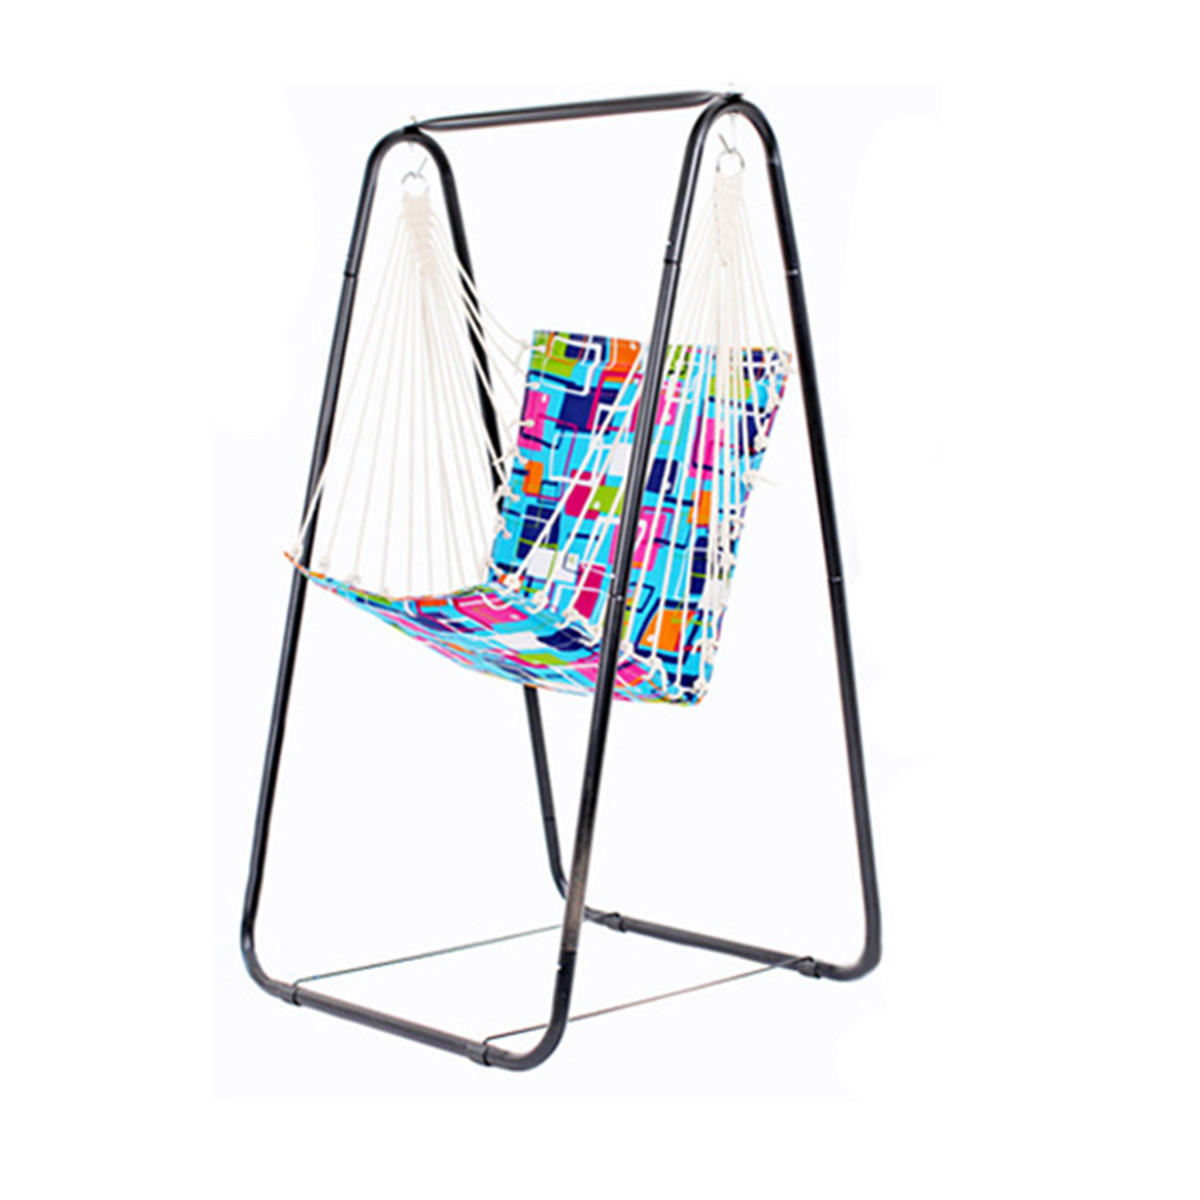 swing chair with stand kuwait floating pool lounge chairs hammock hanging leisure steel foot holder garden customer also viewed